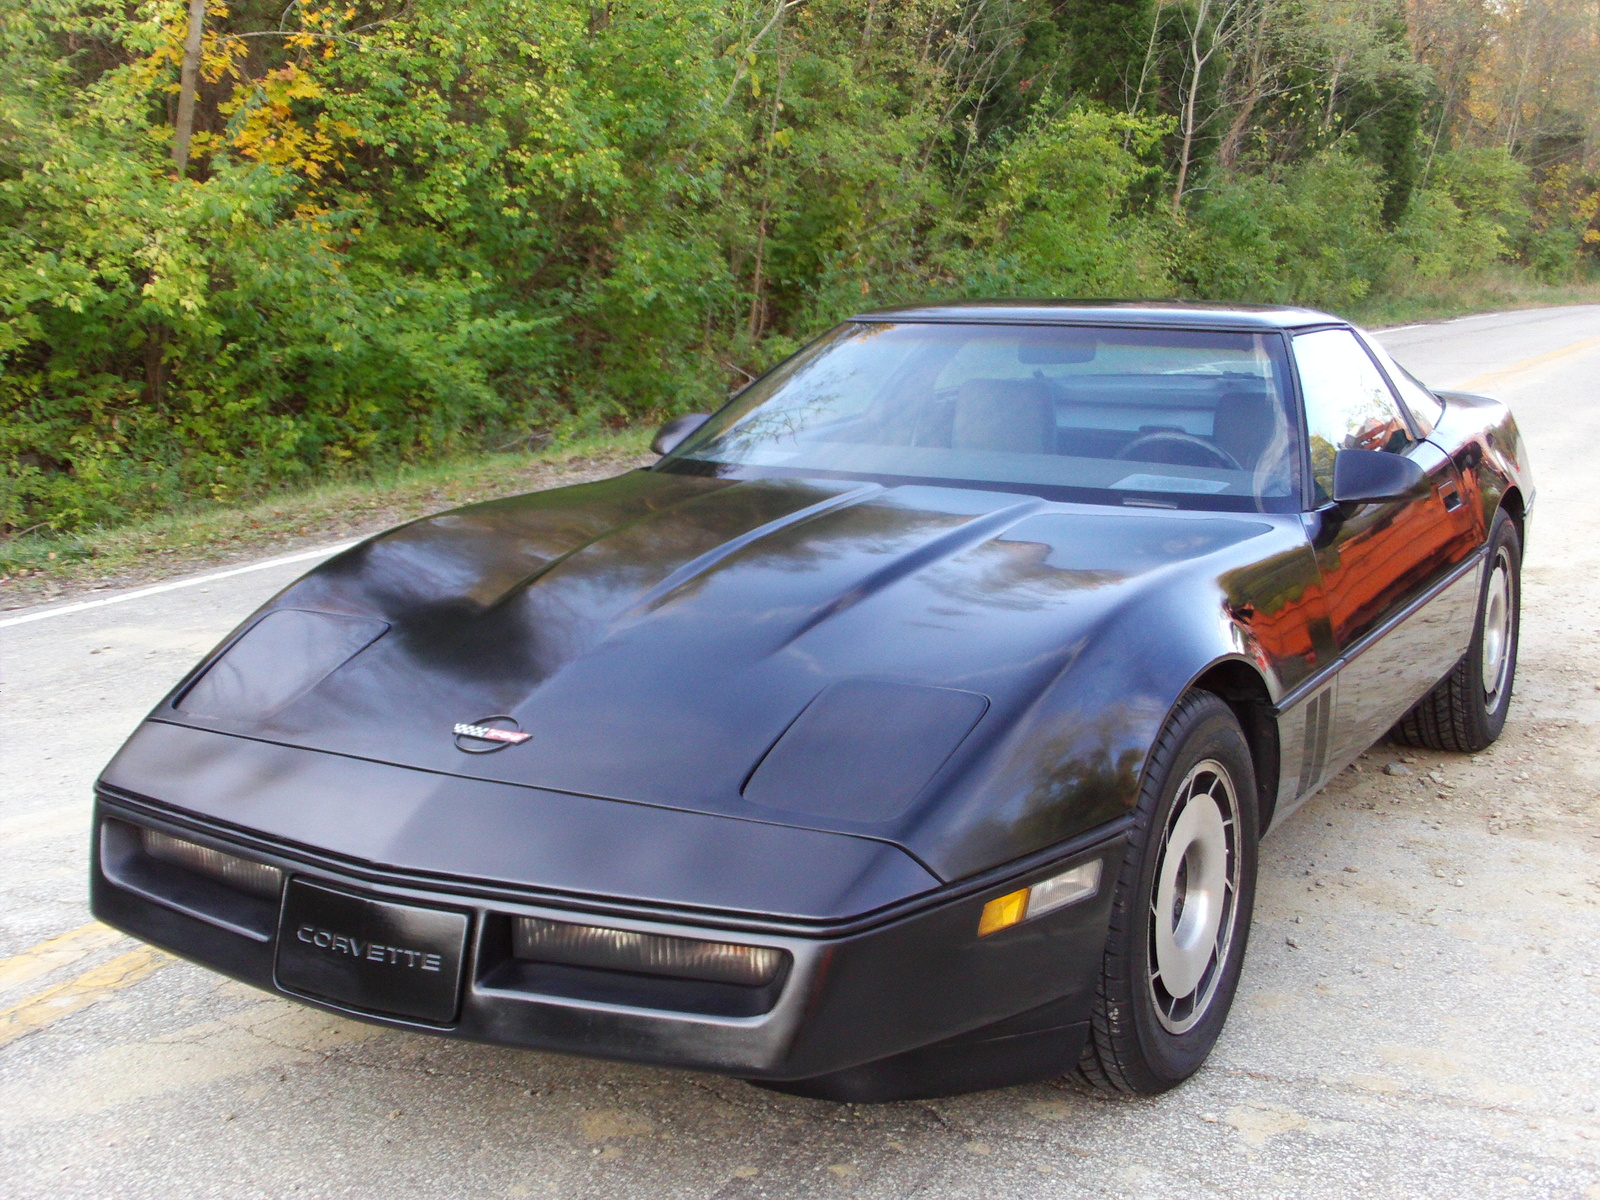 1985 Chevrolet Corvette Coupe picture, exterior